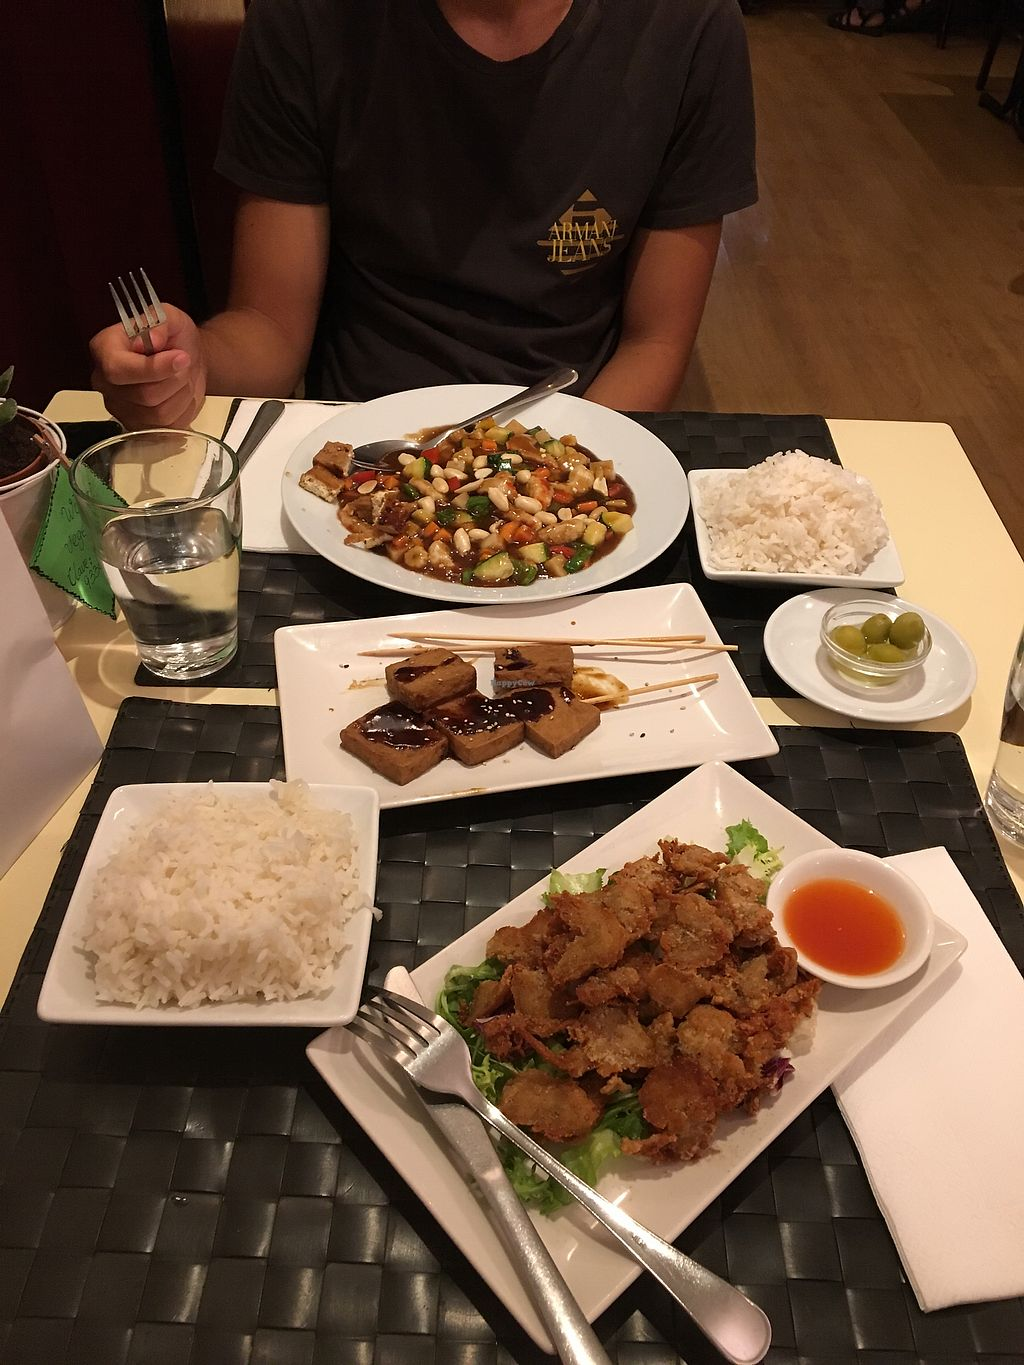 """Photo of Vegesana  by <a href=""""/members/profile/DomiGer"""">DomiGer</a> <br/>I love that crispy """"chicken""""!   <br/> September 21, 2017  - <a href='/contact/abuse/image/57731/306854'>Report</a>"""